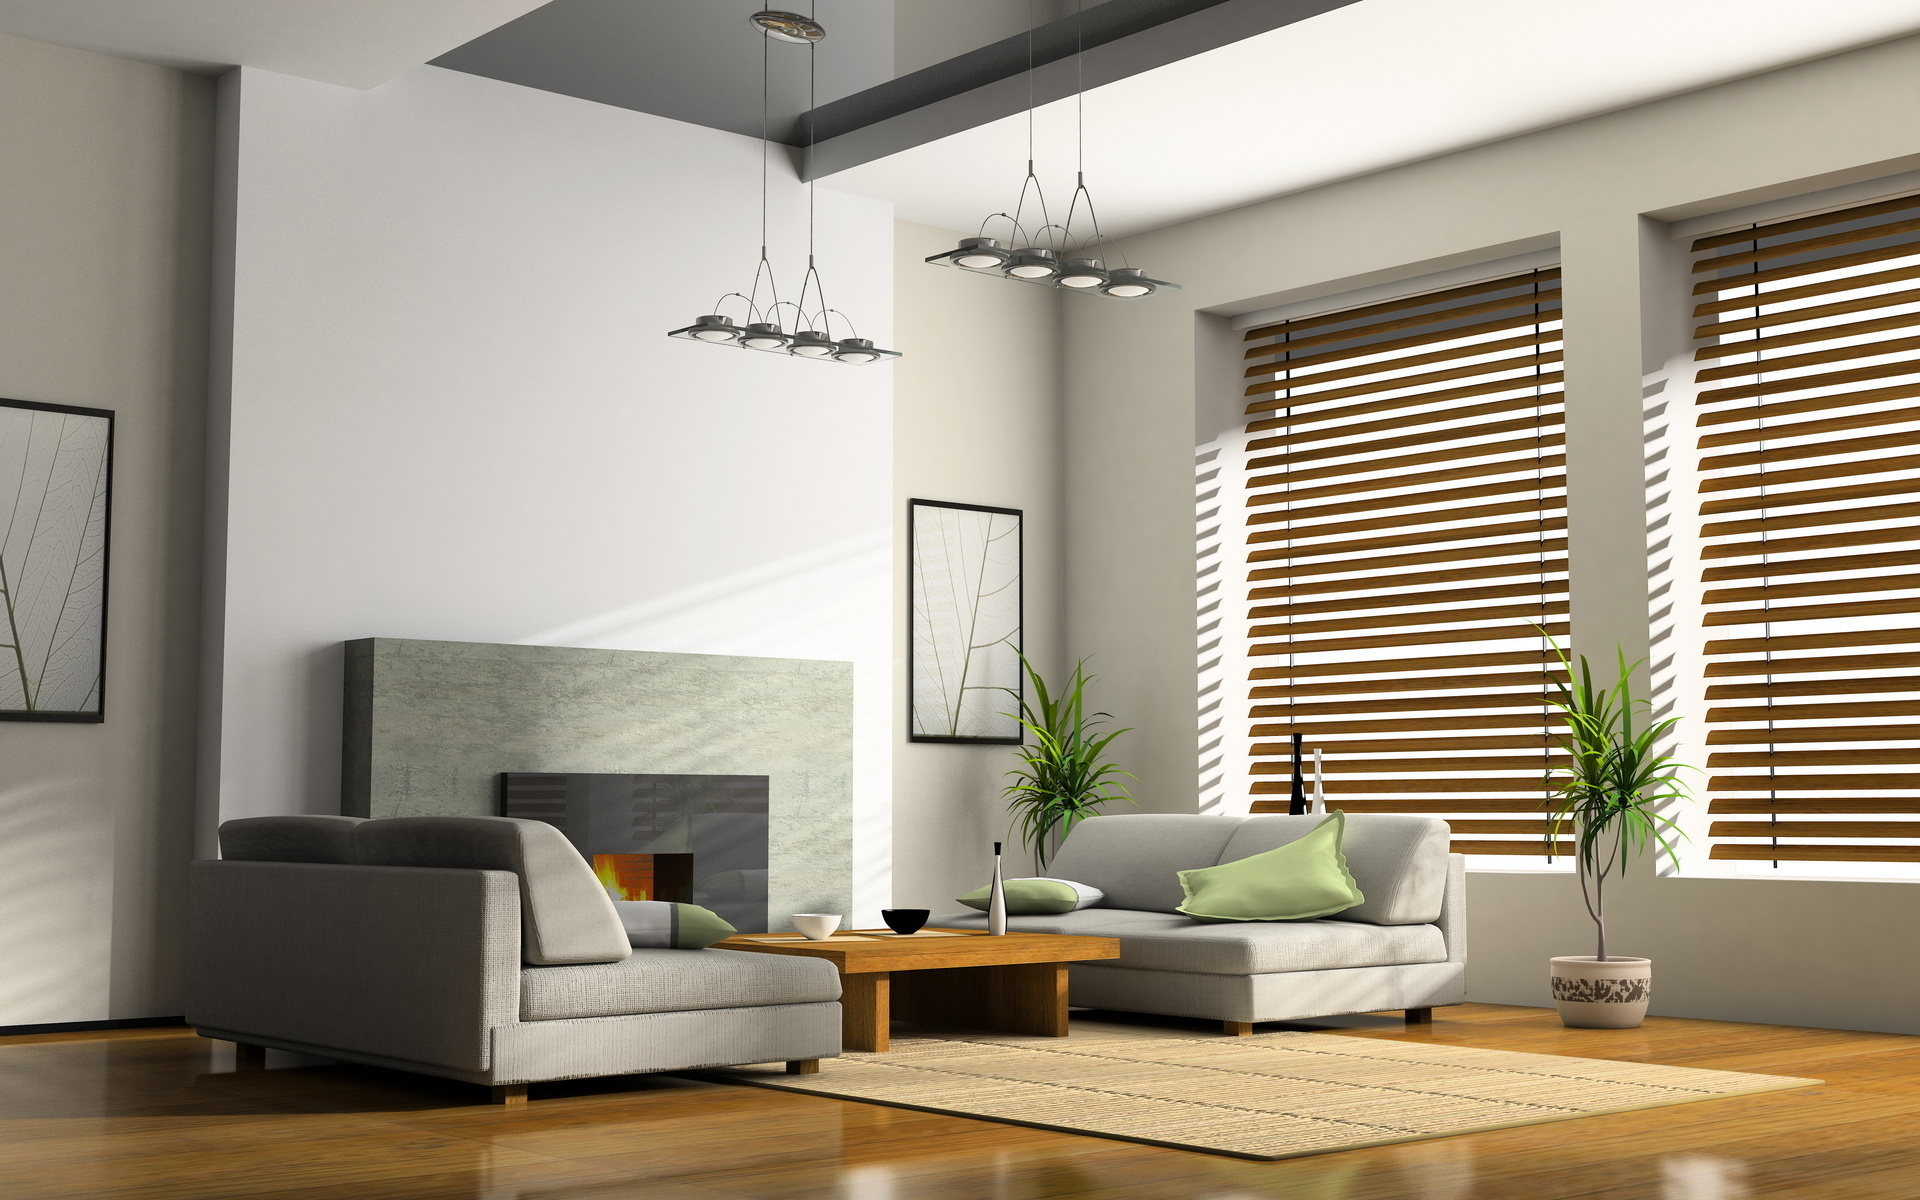 3d interior design desktop wallpaper 60899 1920x1200 px for Home interior design photos hd